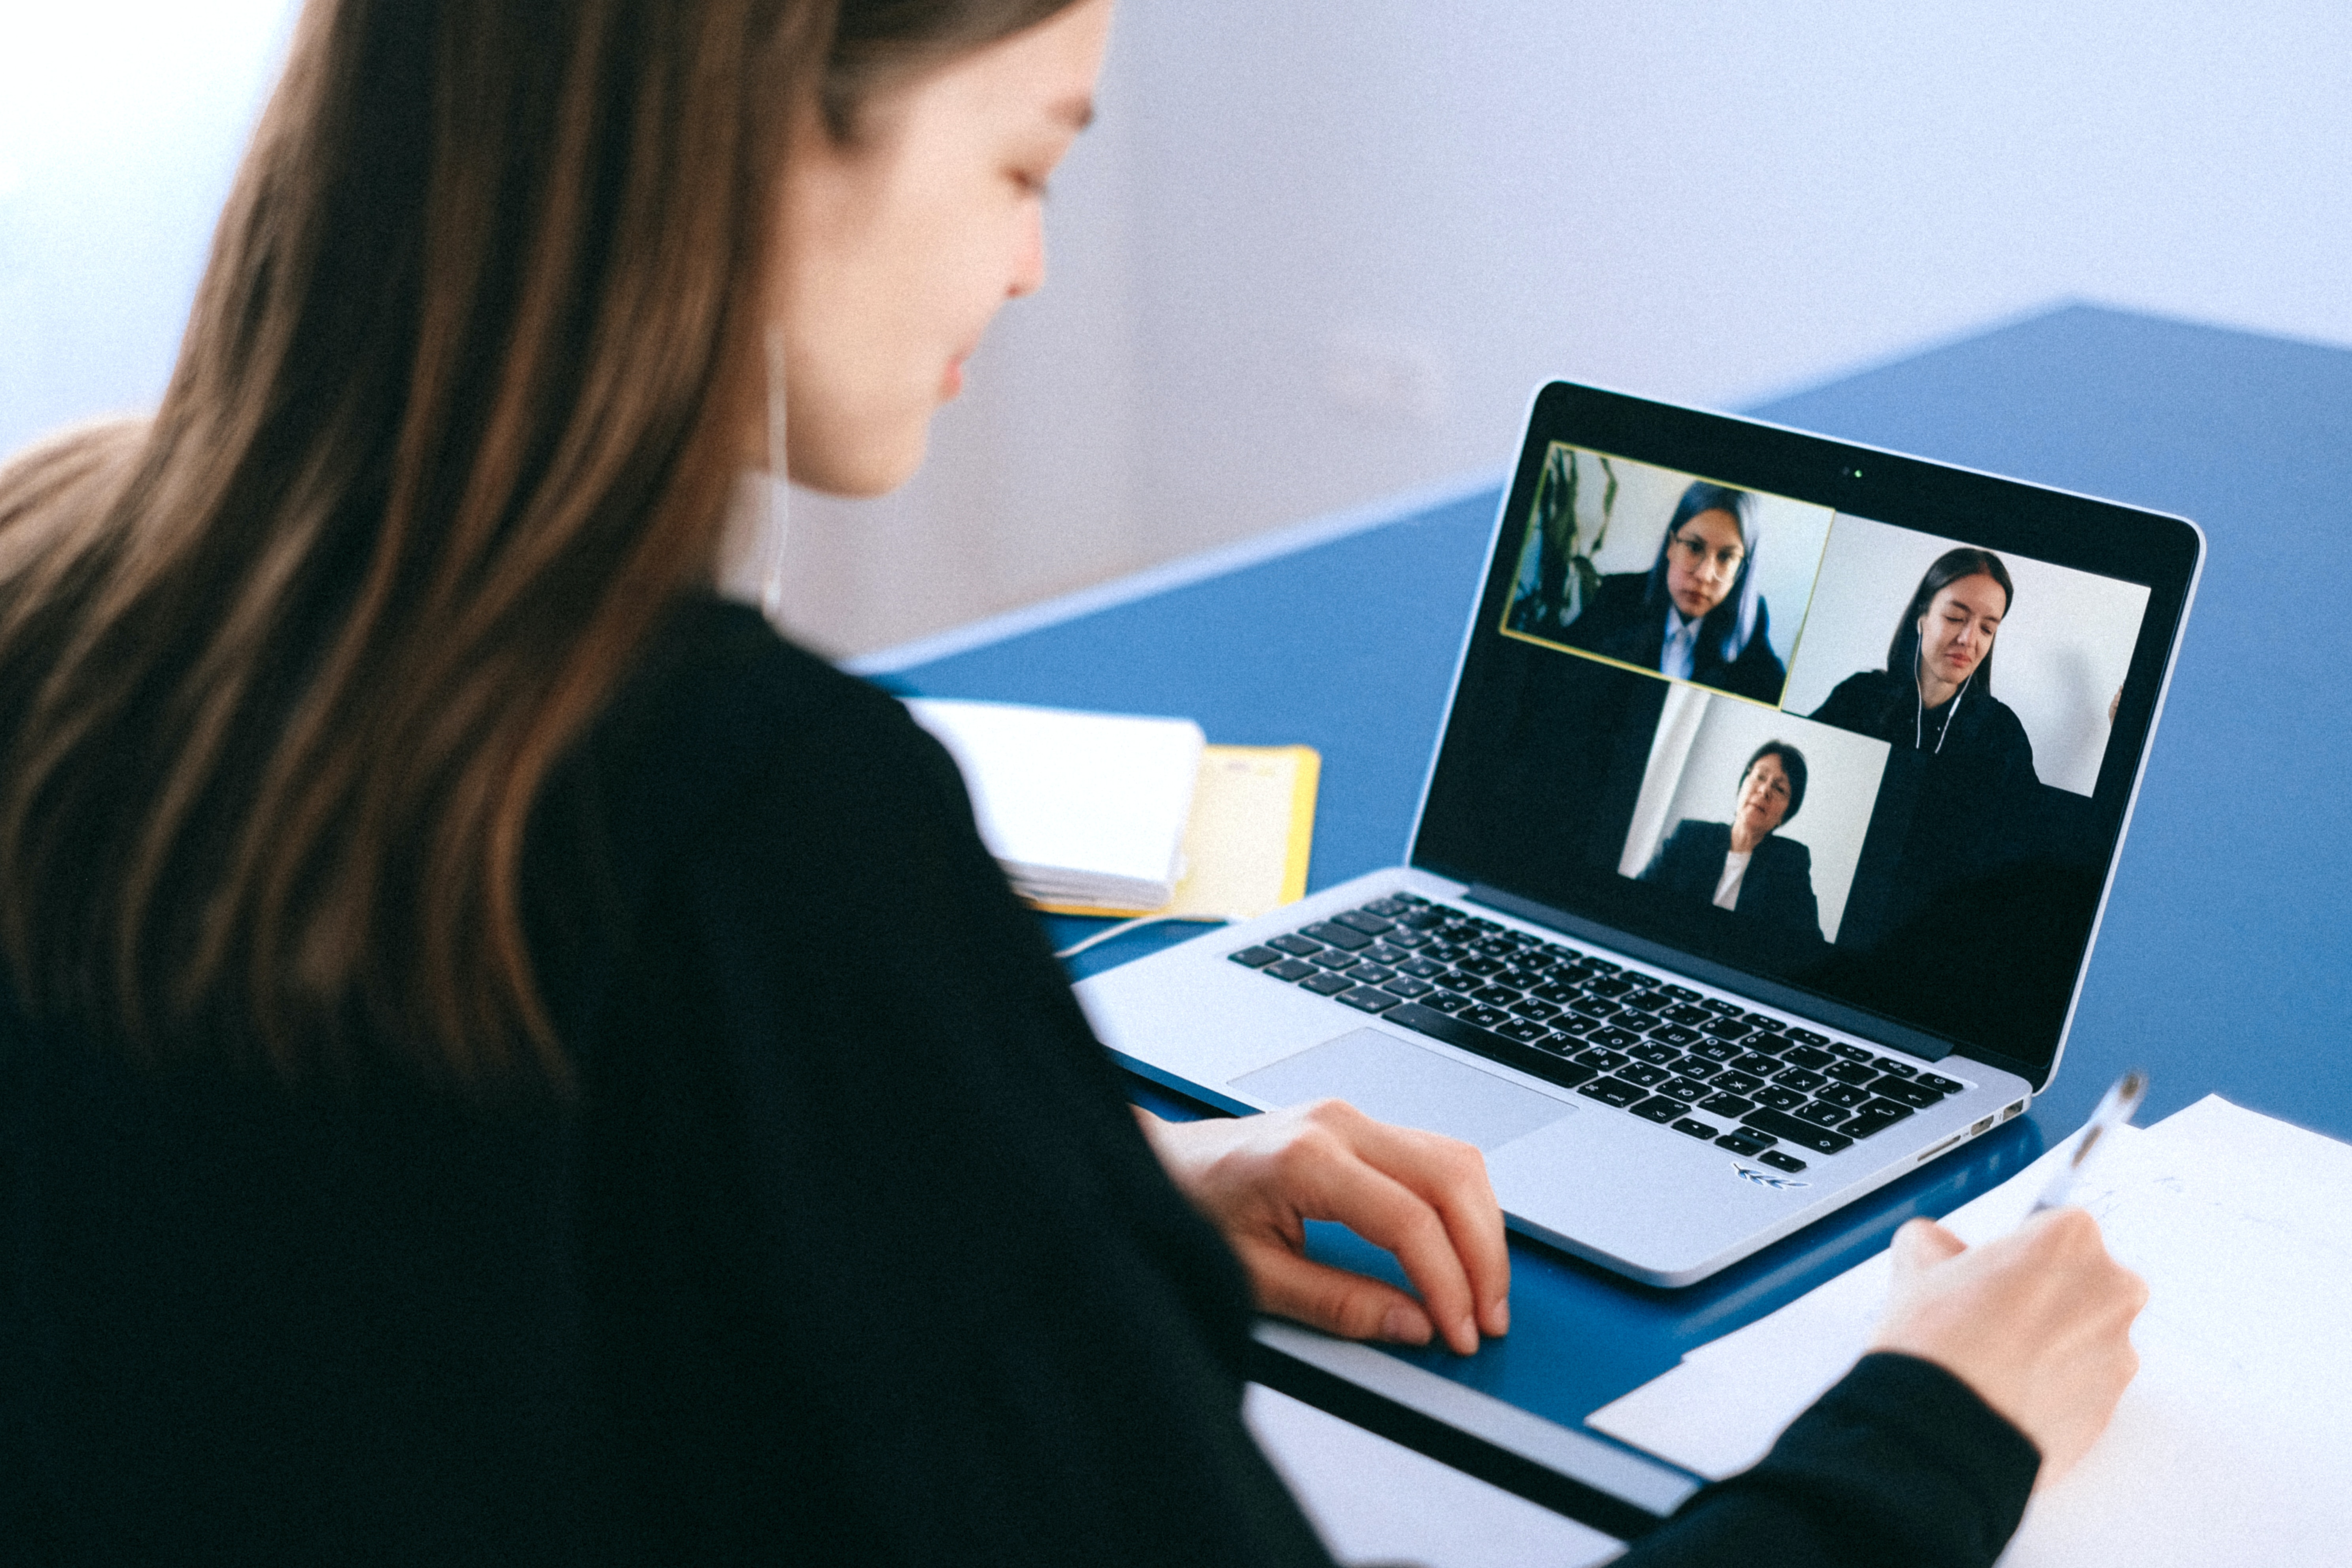 microsoft teams vs zoom conferencing laptop woman video call